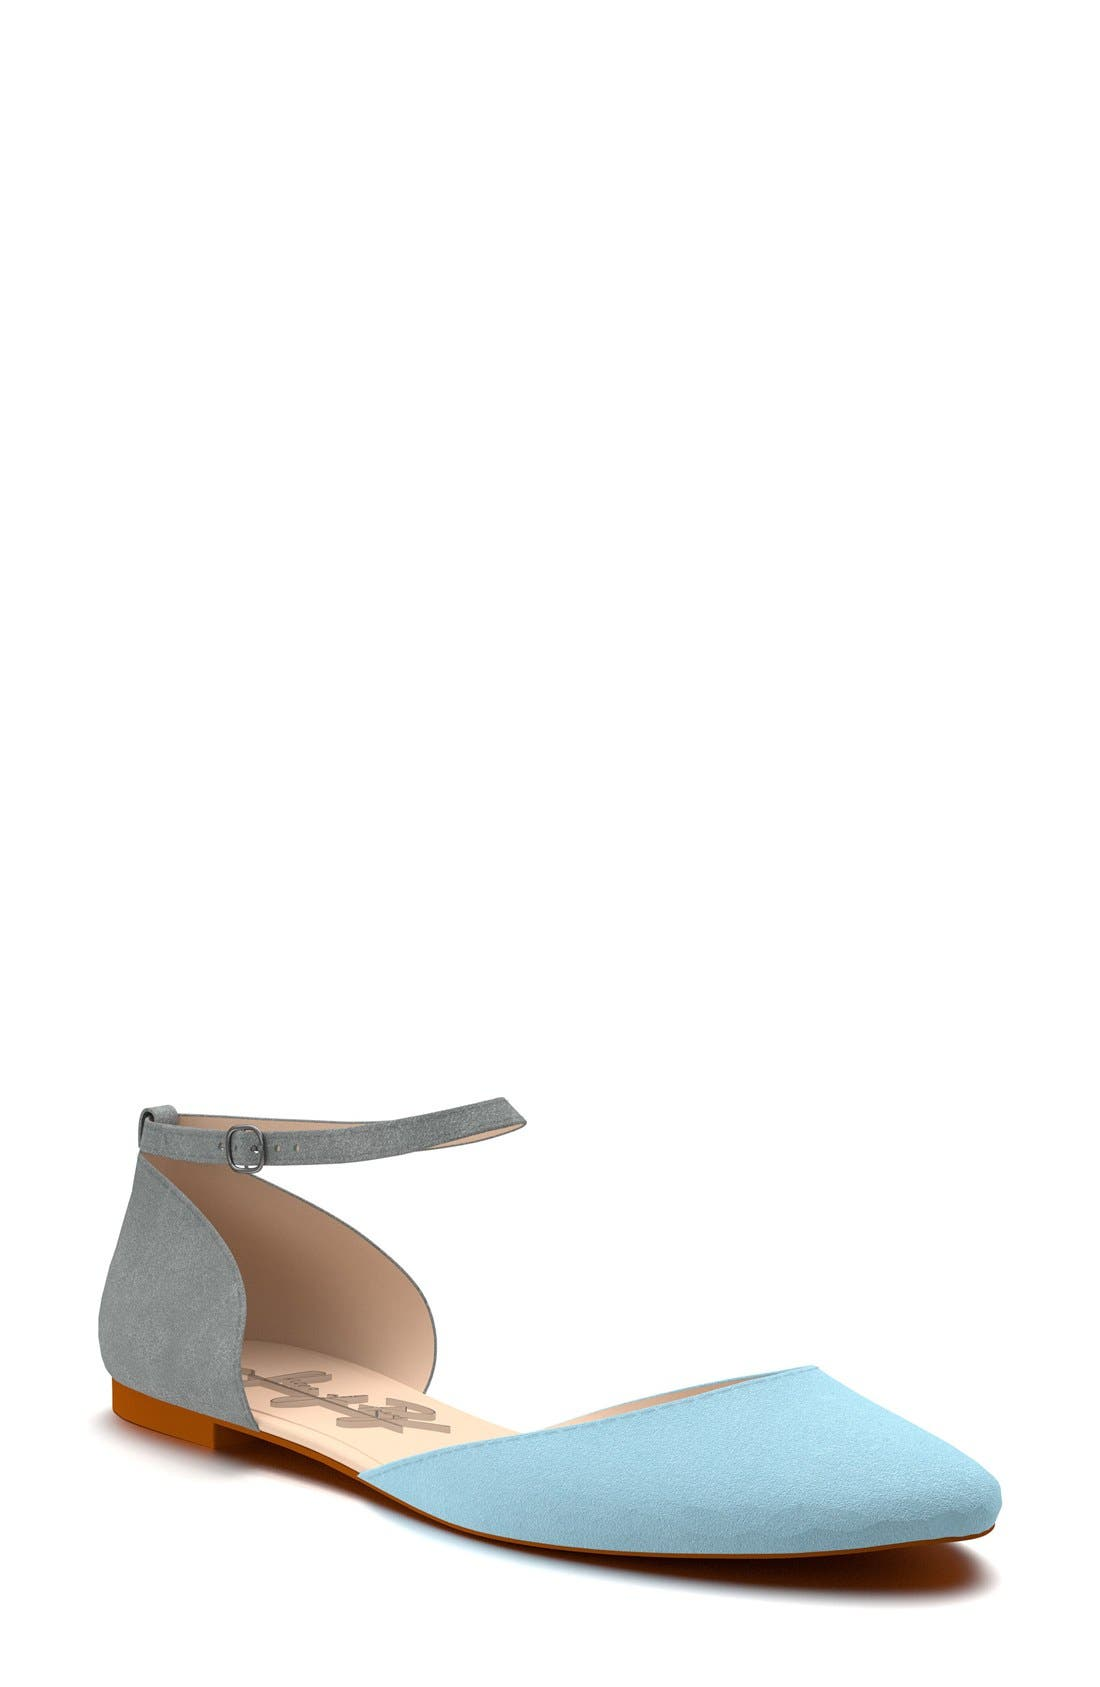 Shoes of Prey Ankle Strap d'Orsay Flat (Women)